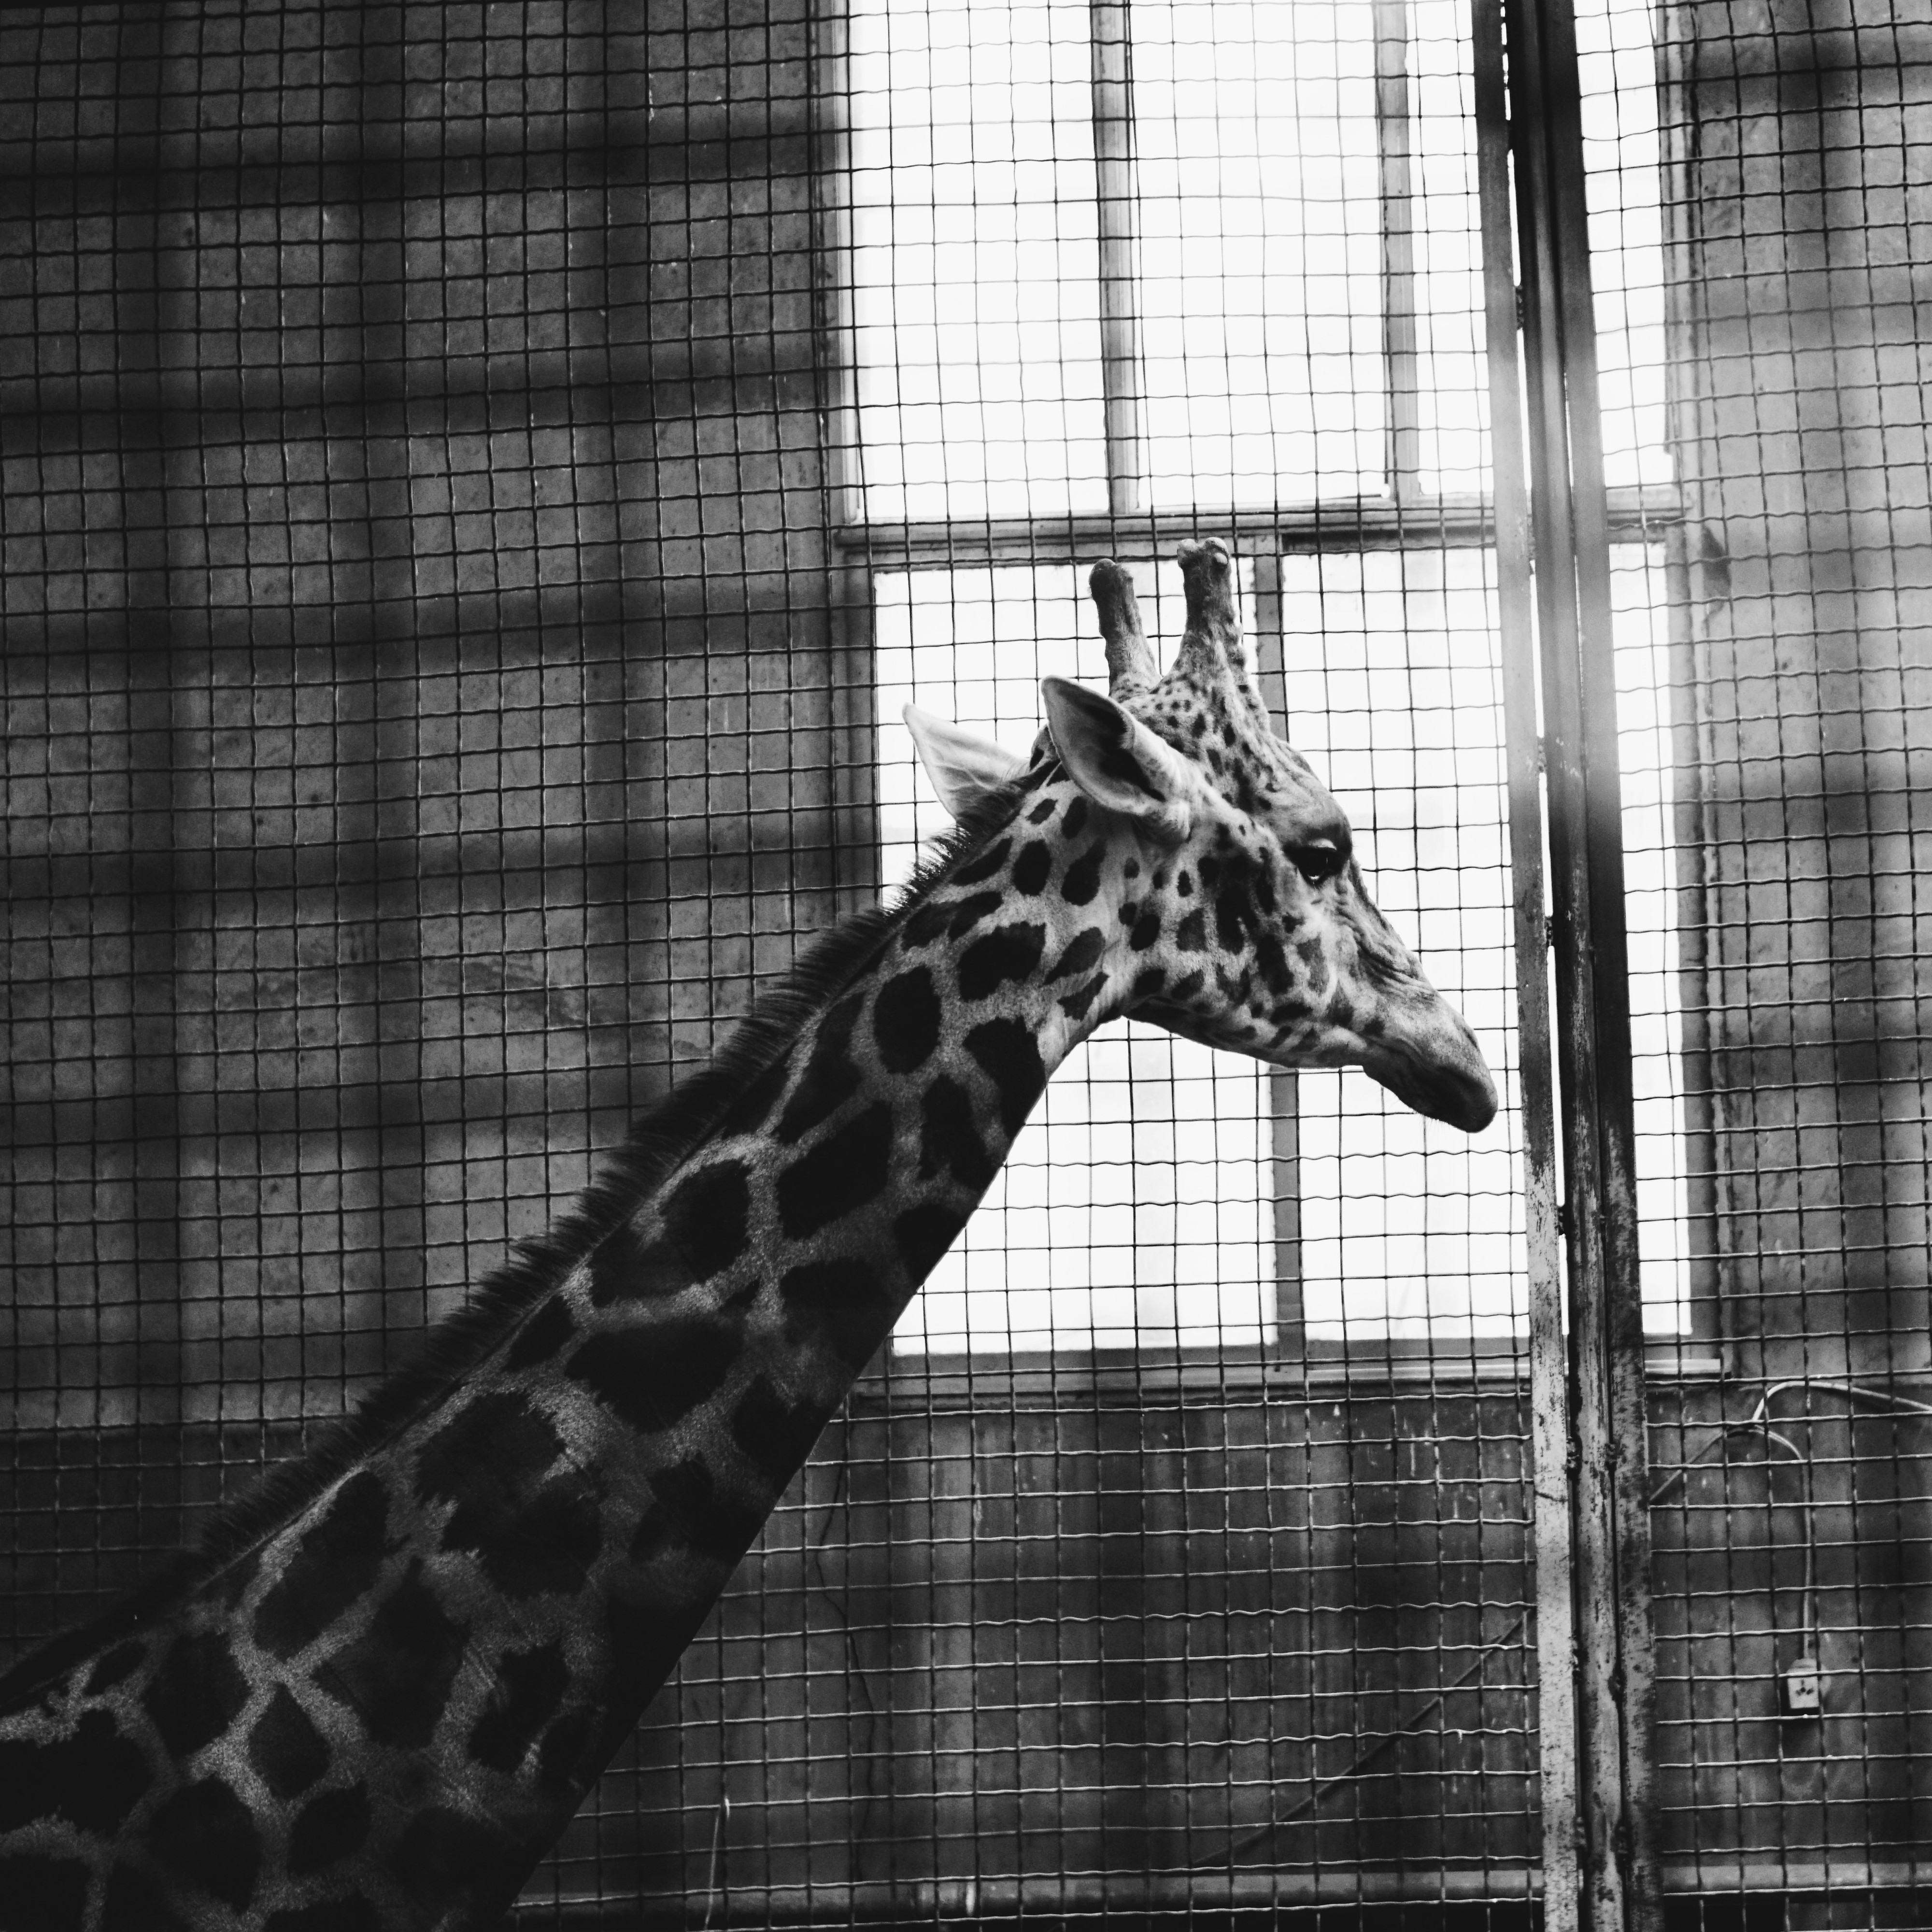 Black-and-white photo of a giraffe in a cage, looking out a window.